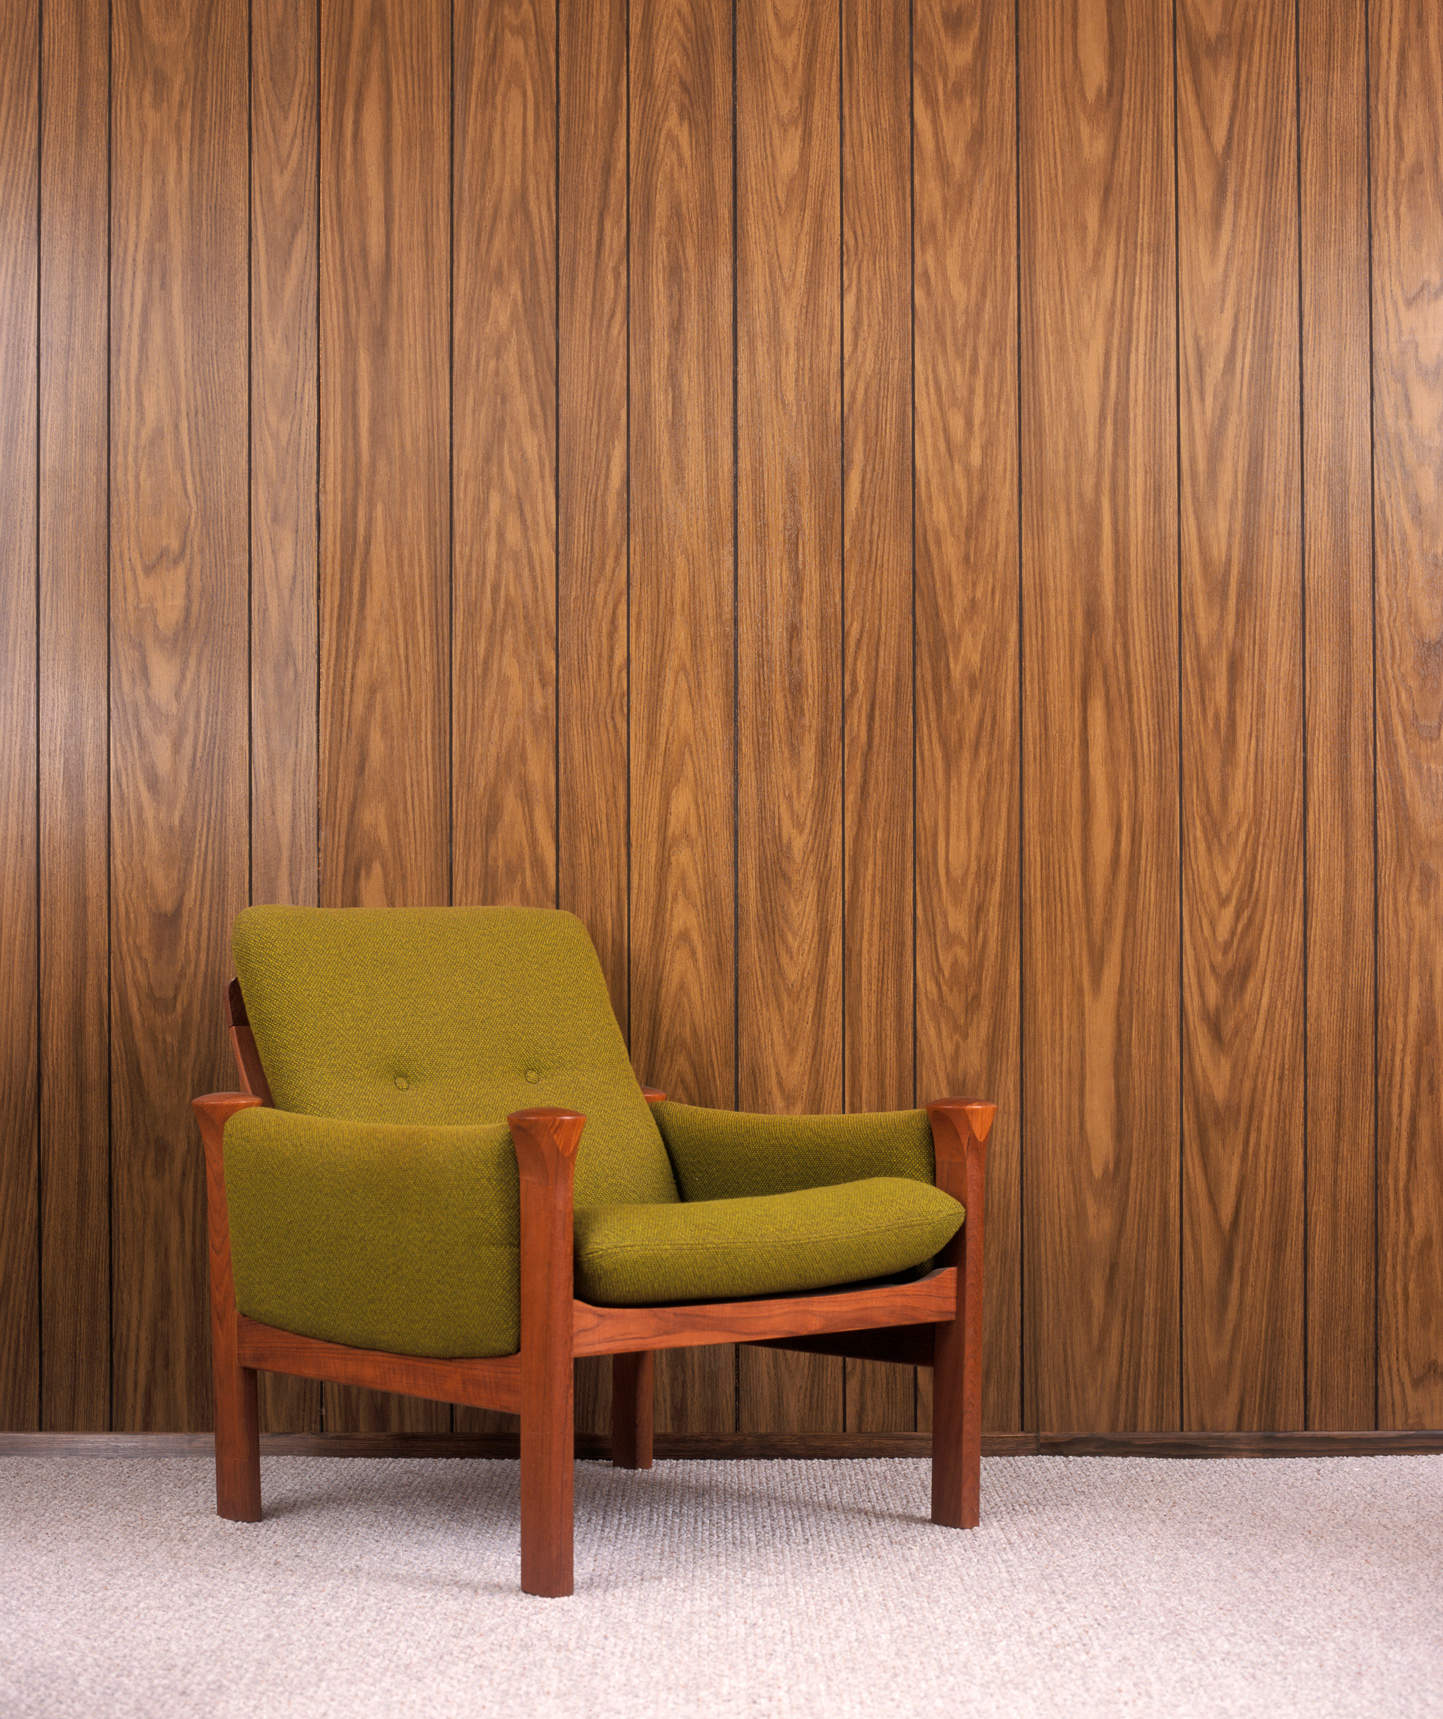 Why You Should Reconsider Wood Paneling